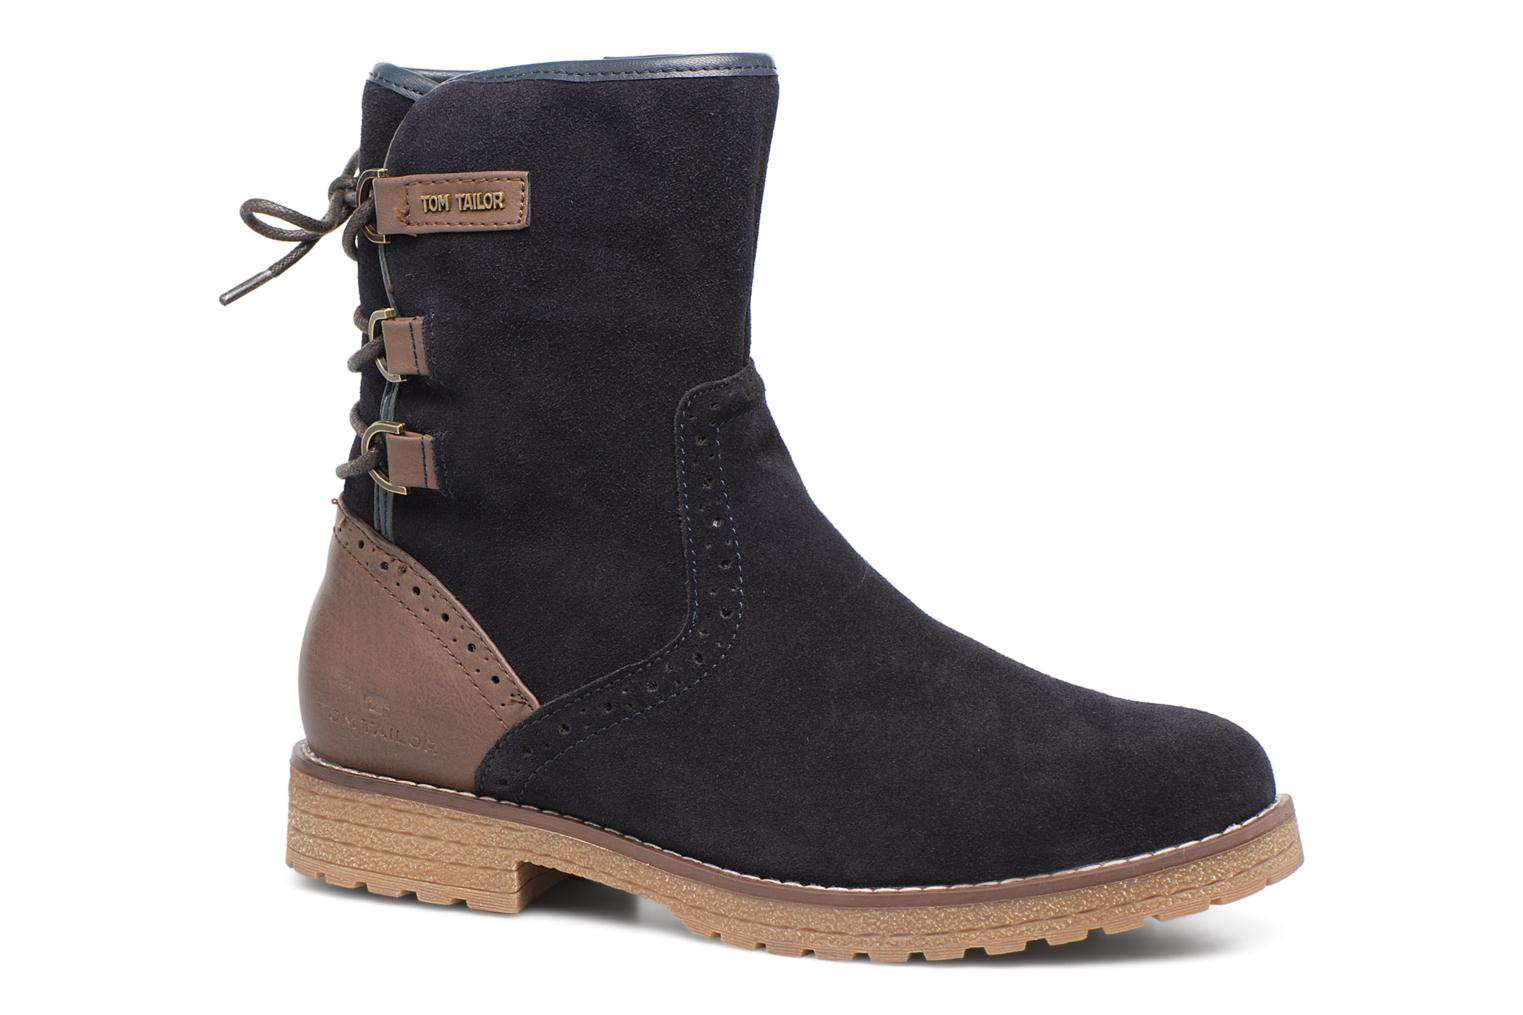 Marques Chaussure femme Tom Tailor femme Margaux Navy